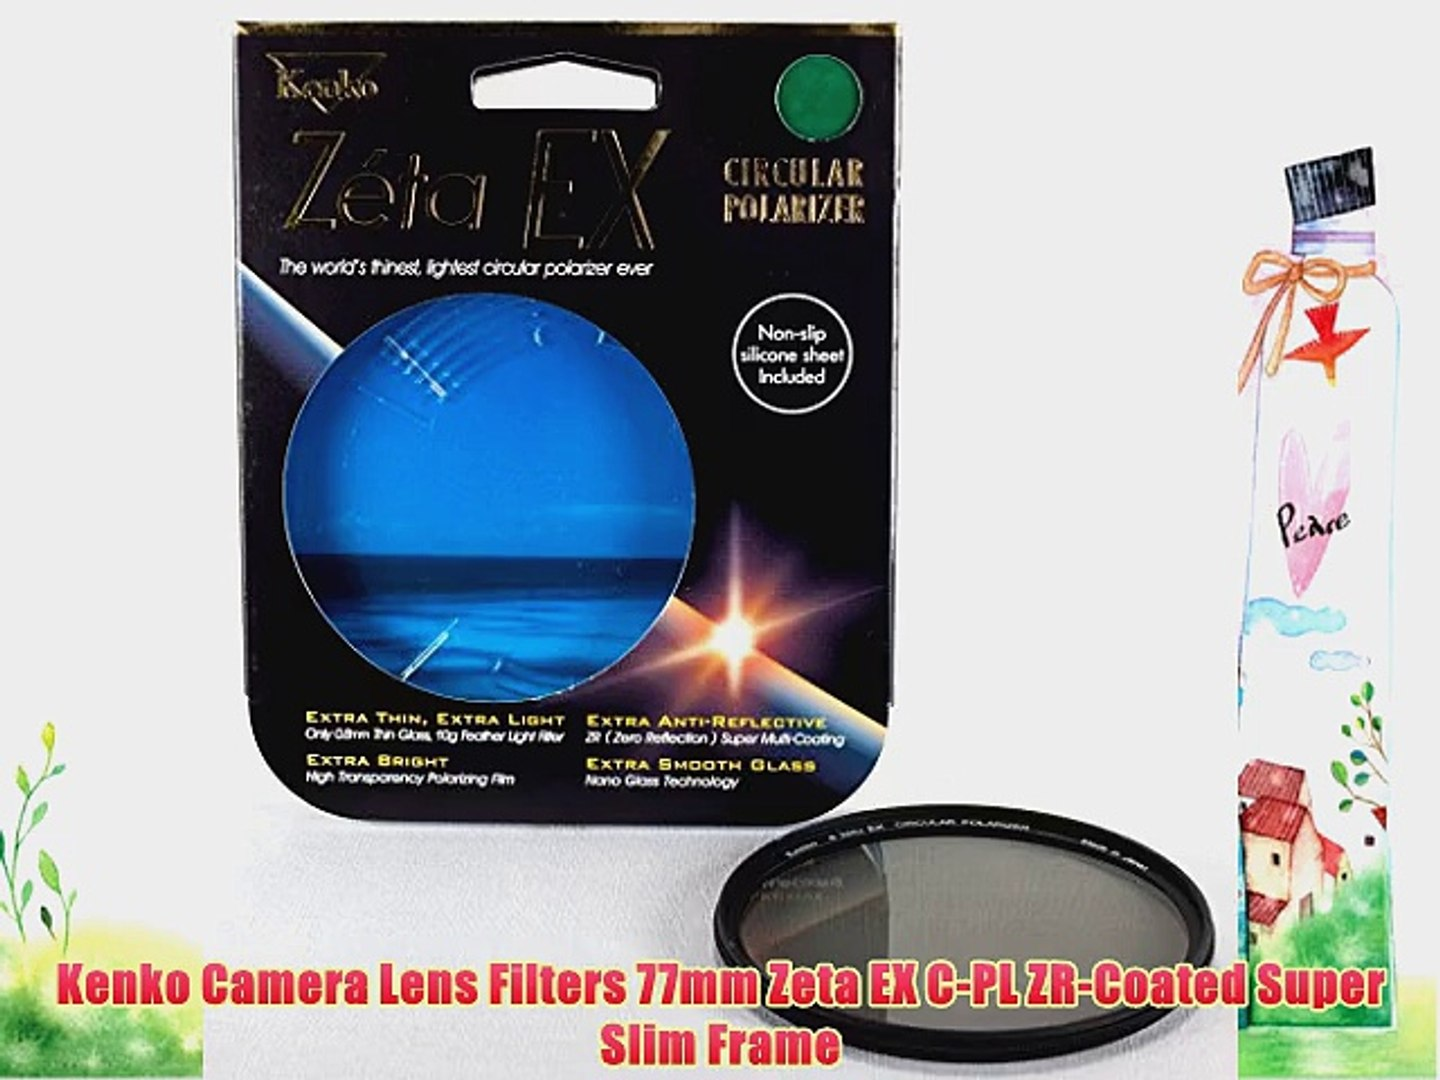 Kenko 62mm Zeta EX C-PL ZR-Coated Super Slim Frame Camera Lens Filters